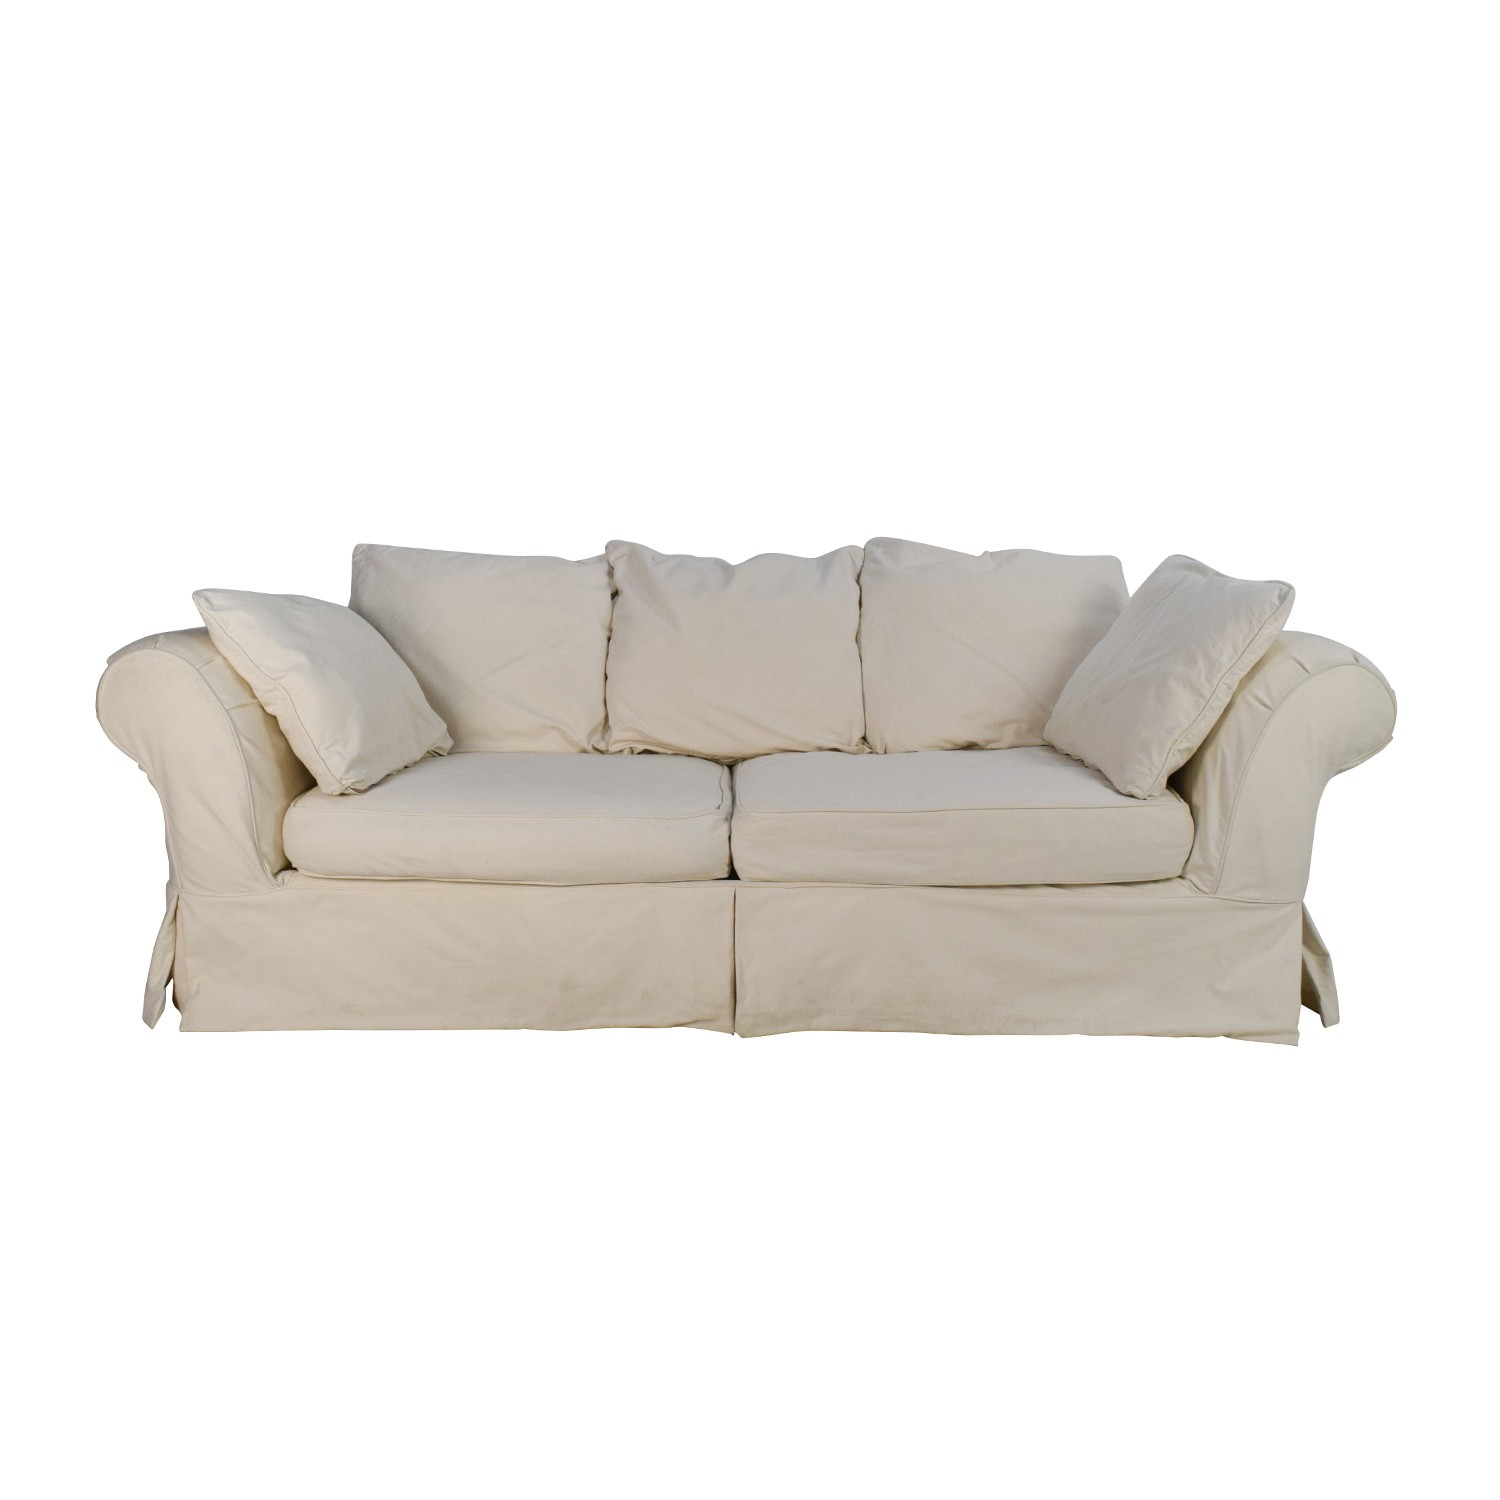 Jennifer Convertibles sofa Fresh Off Jennifer Convertibles Jennifer Convertibles Linda Concept